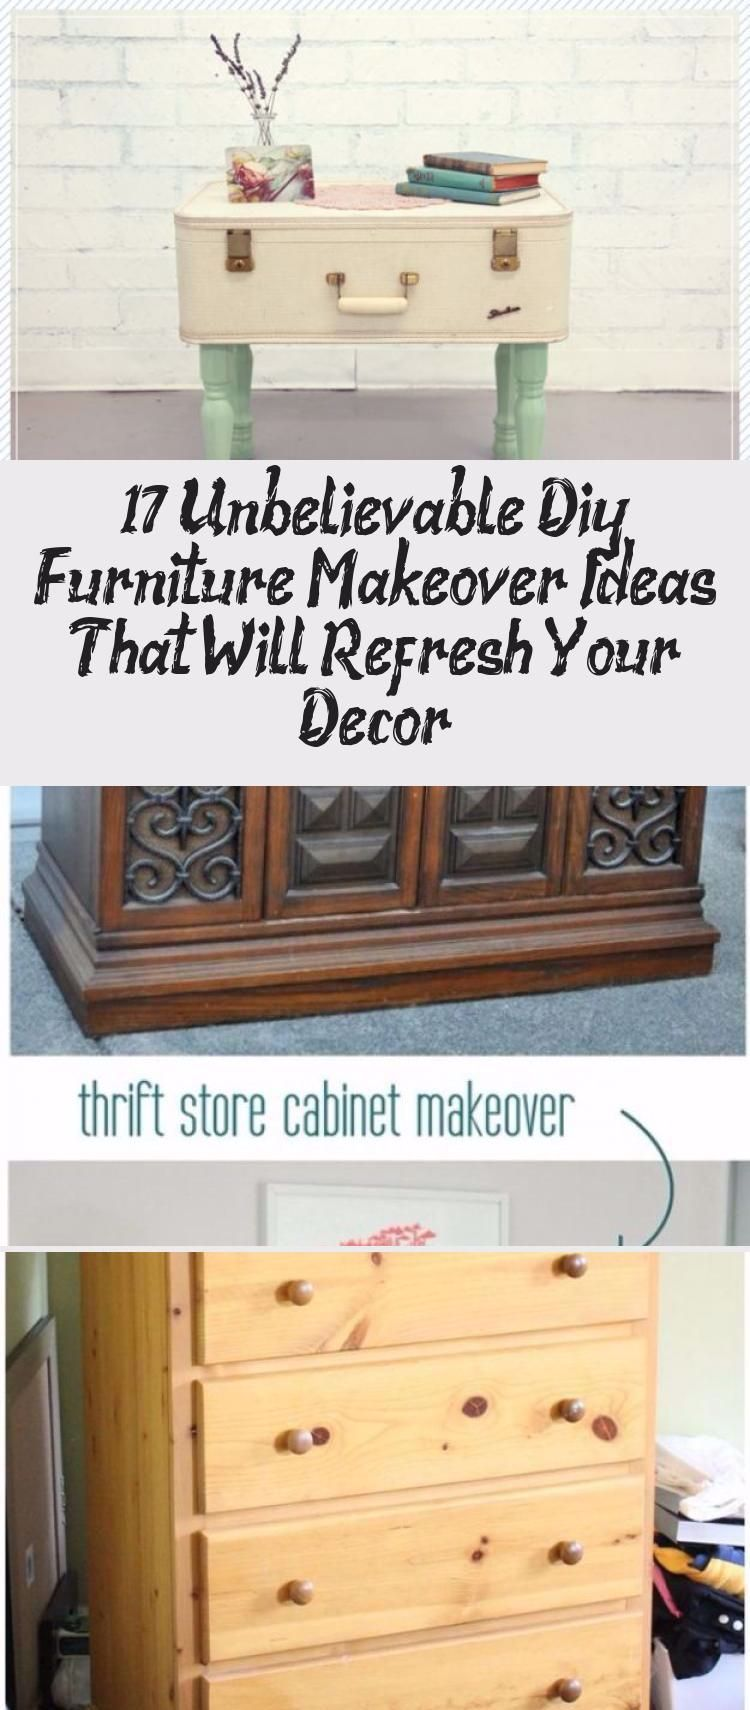 17 Unbelievable DIY Furniture Makeover Ideas That Will Refresh Your Decor #HomeDecorDIYRecycle